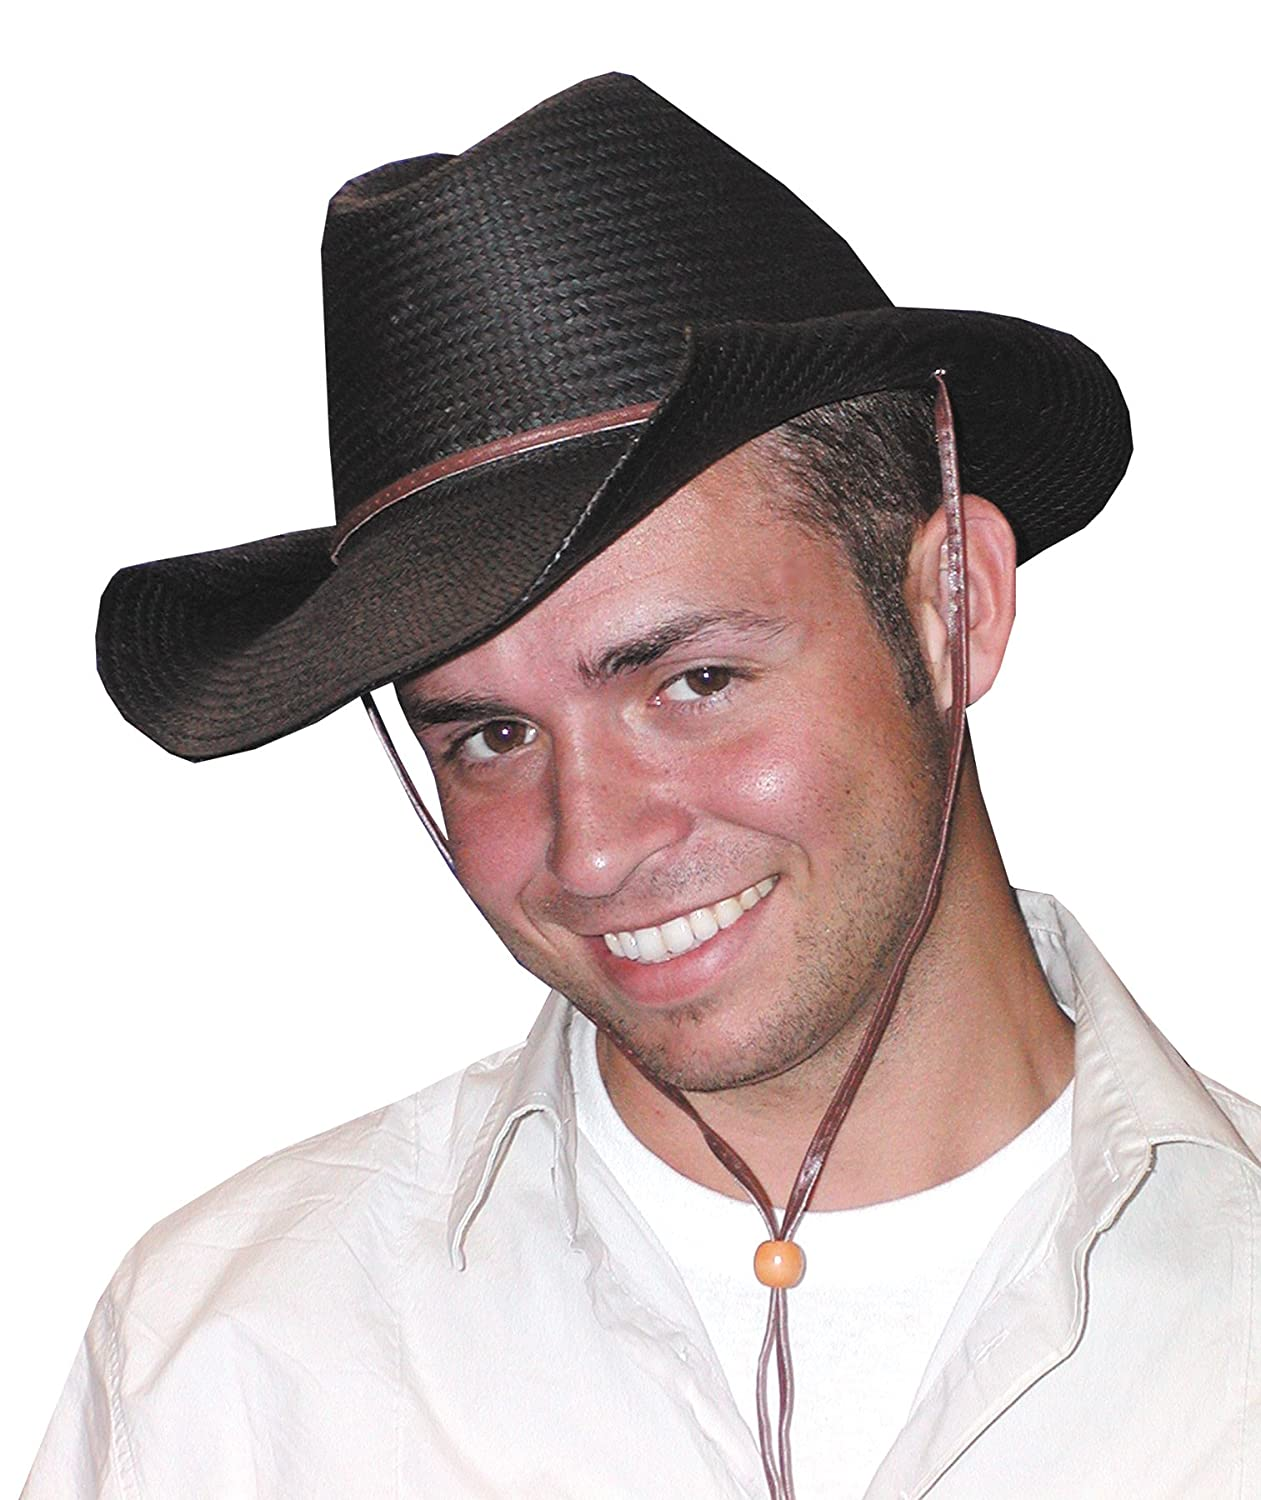 942370dc274 Amazon.com  UHC Straw Rolled Brim Cowboy Hat Adult Western Halloween  Costume Accessory (Black)  Clothing